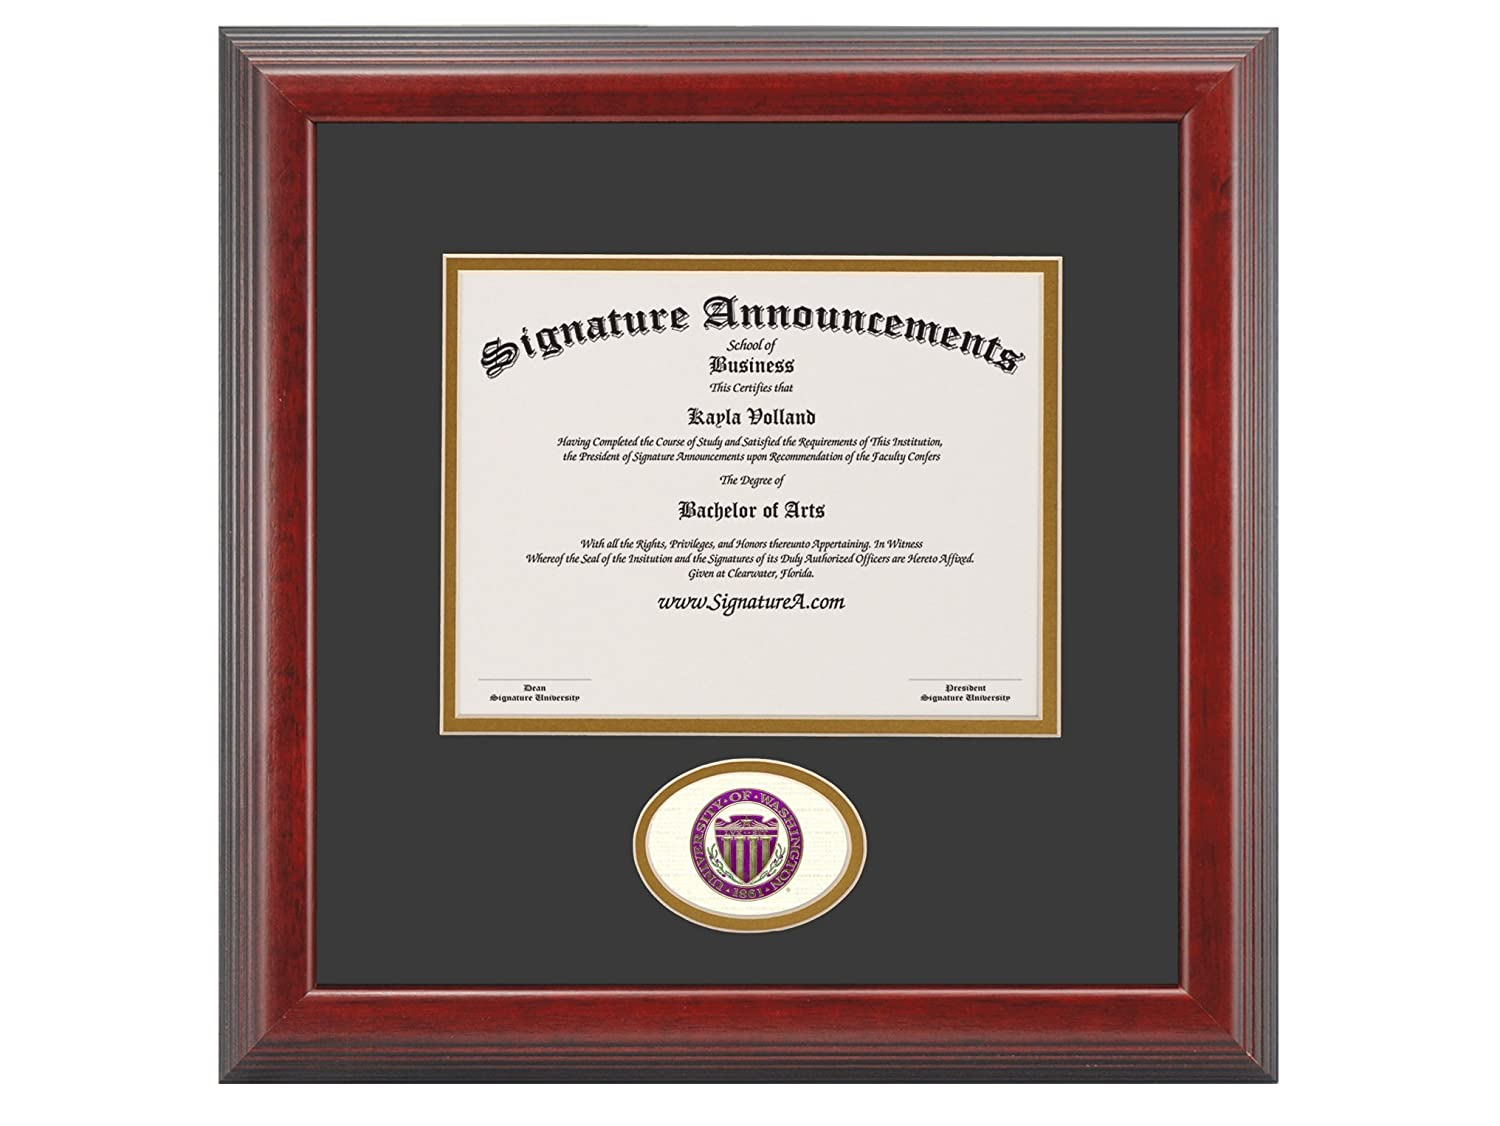 Professional//Doctor Sculpted Foil Seal Graduation Diploma Frame 16 x 16 Cherry Signature Announcements University-of-Washington-Bothell Undergraduate